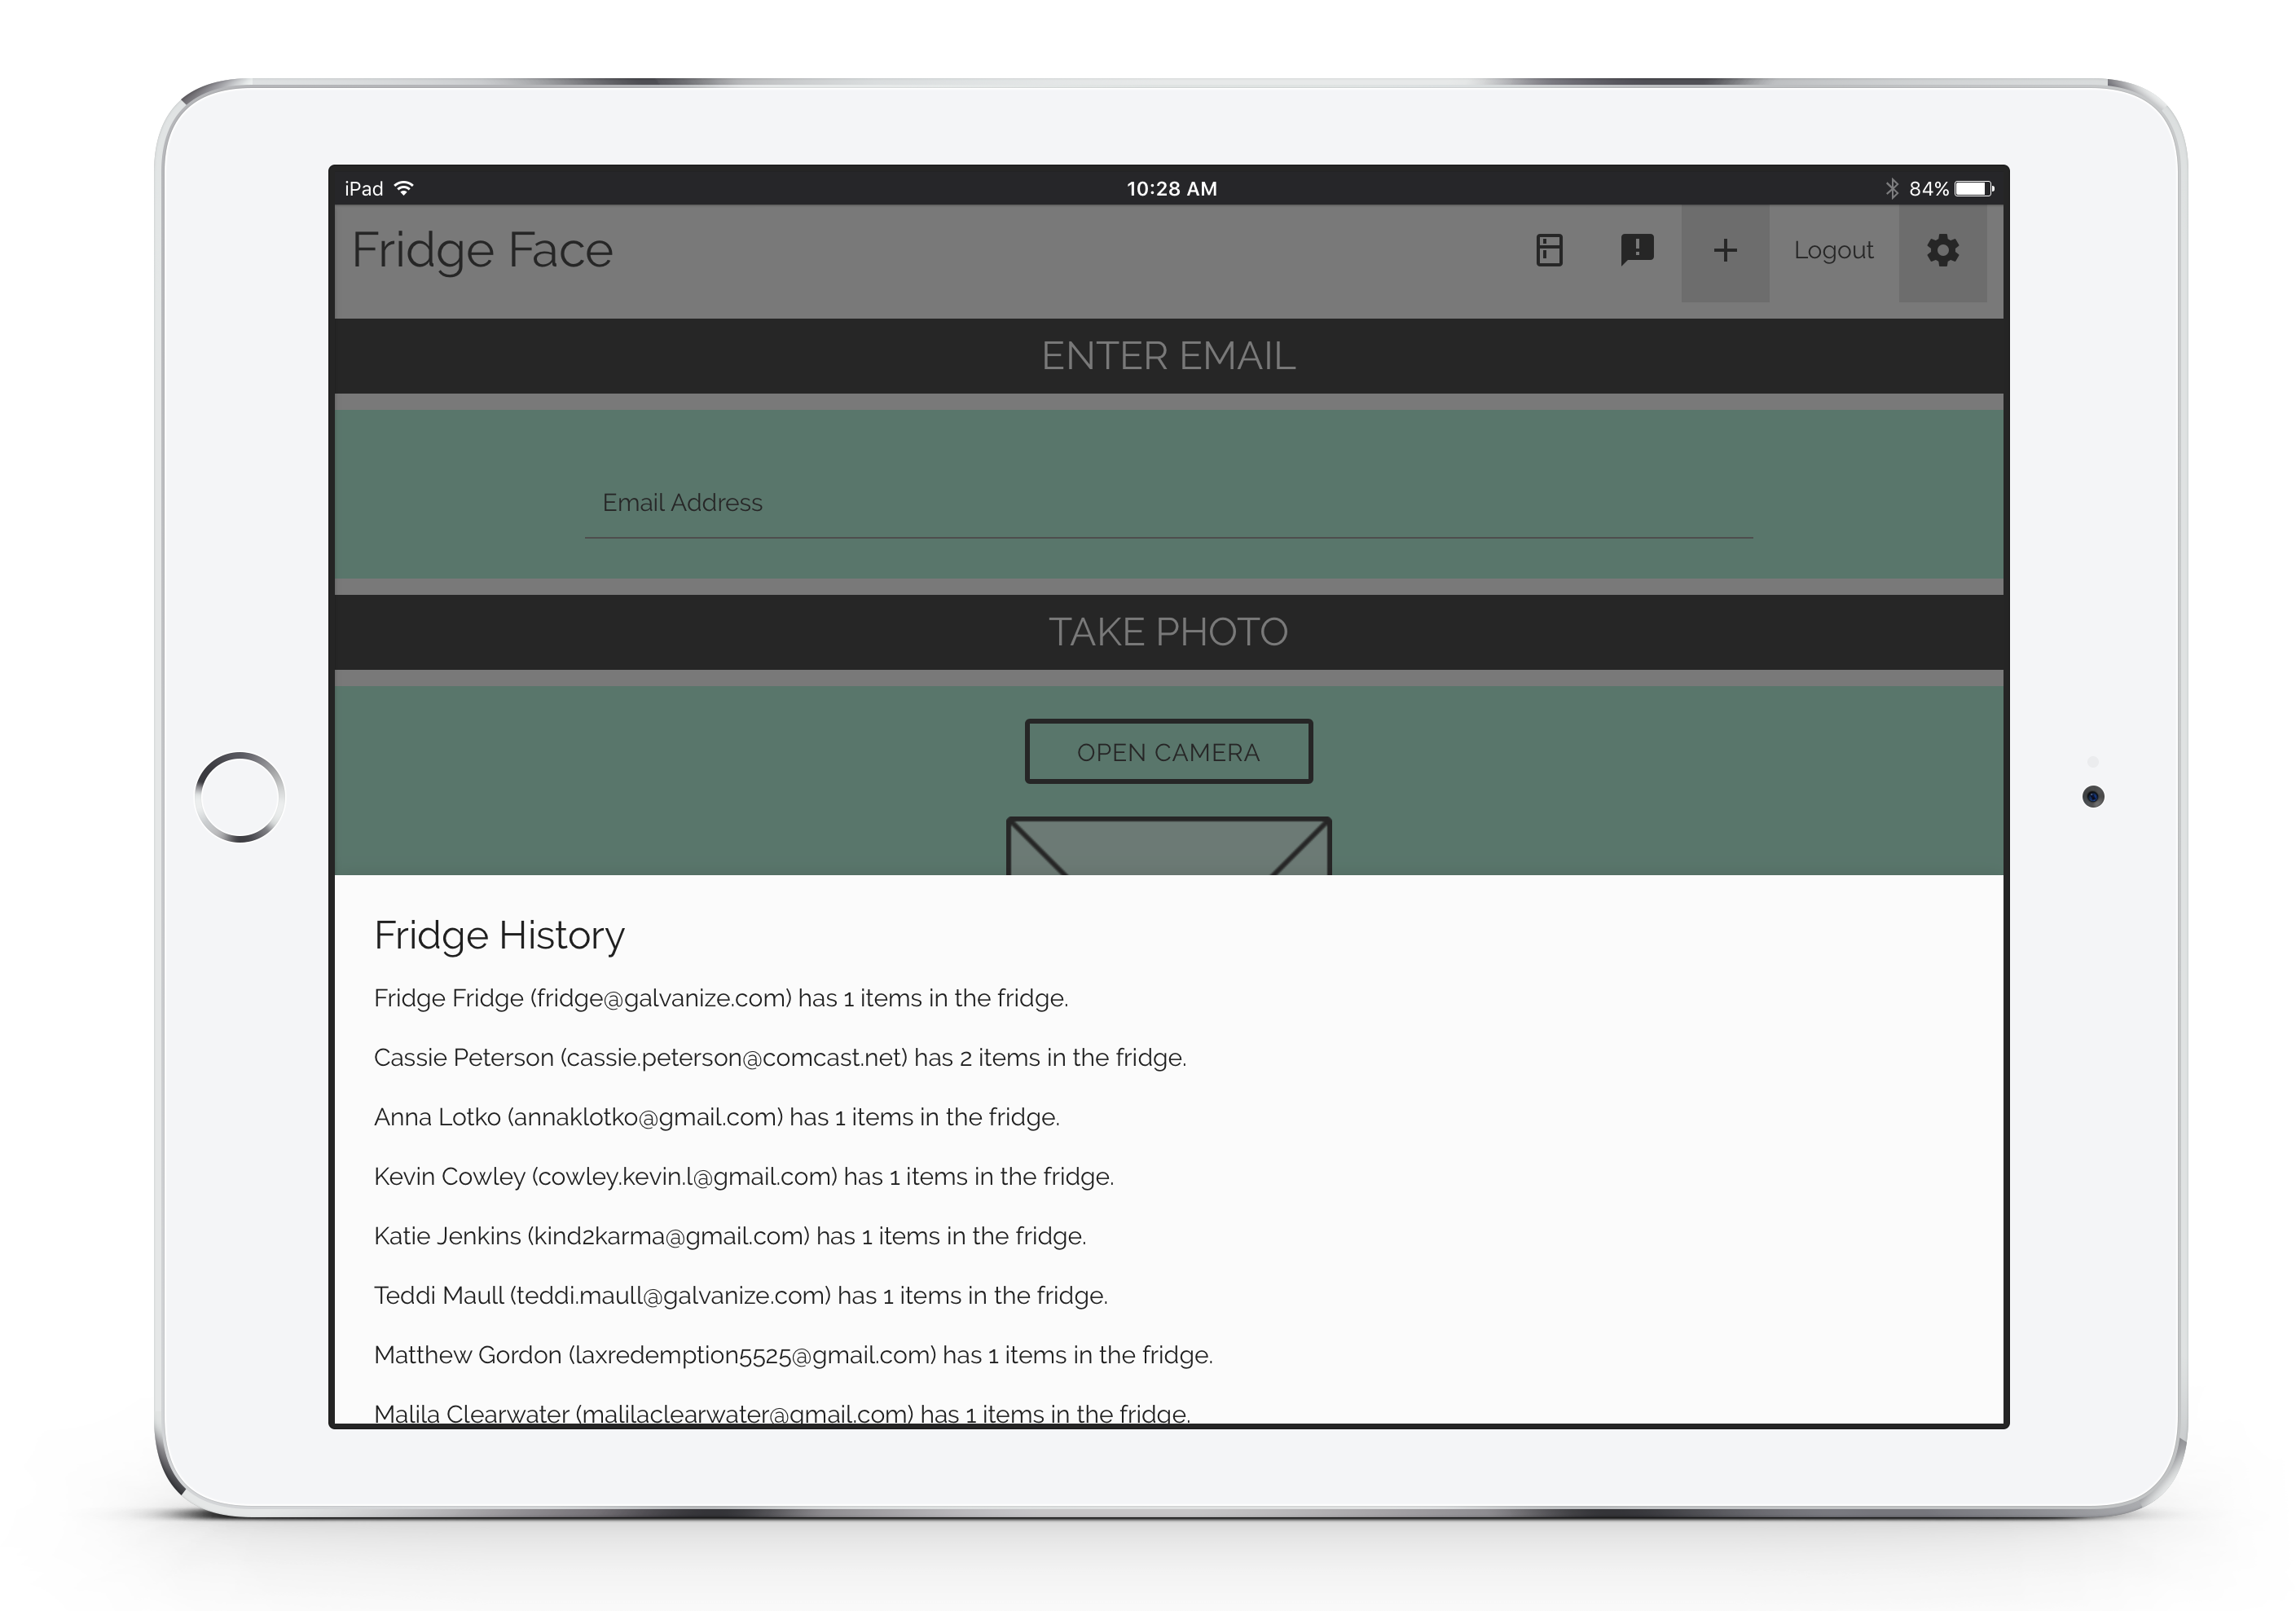 Fridge Face iPad Admin Overview